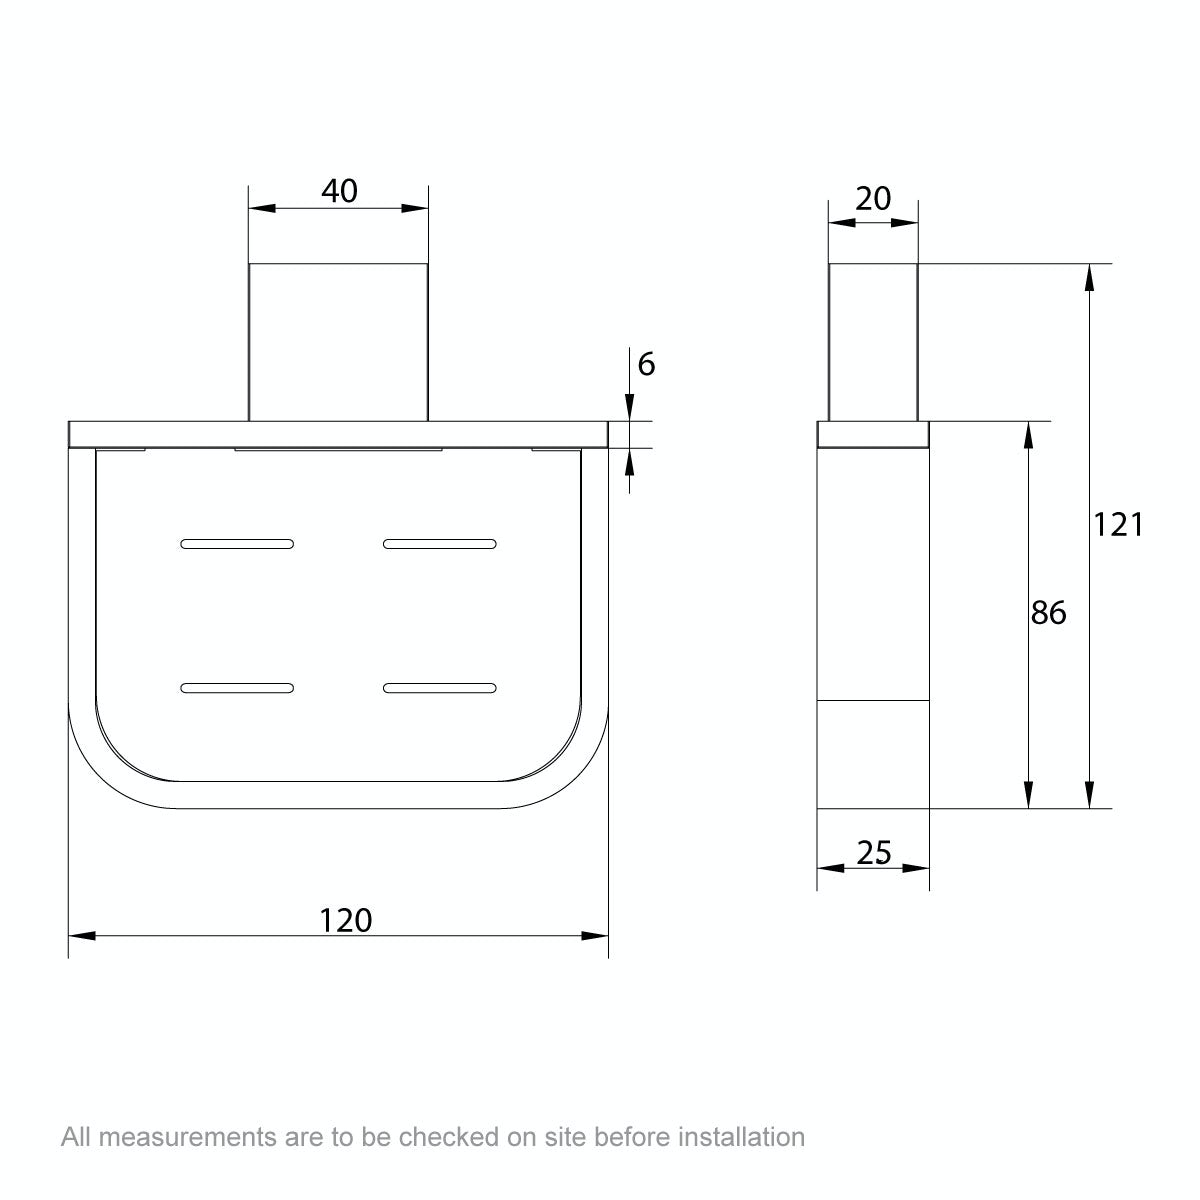 Dimensions for Mode Spencer brushed nickel soap dish